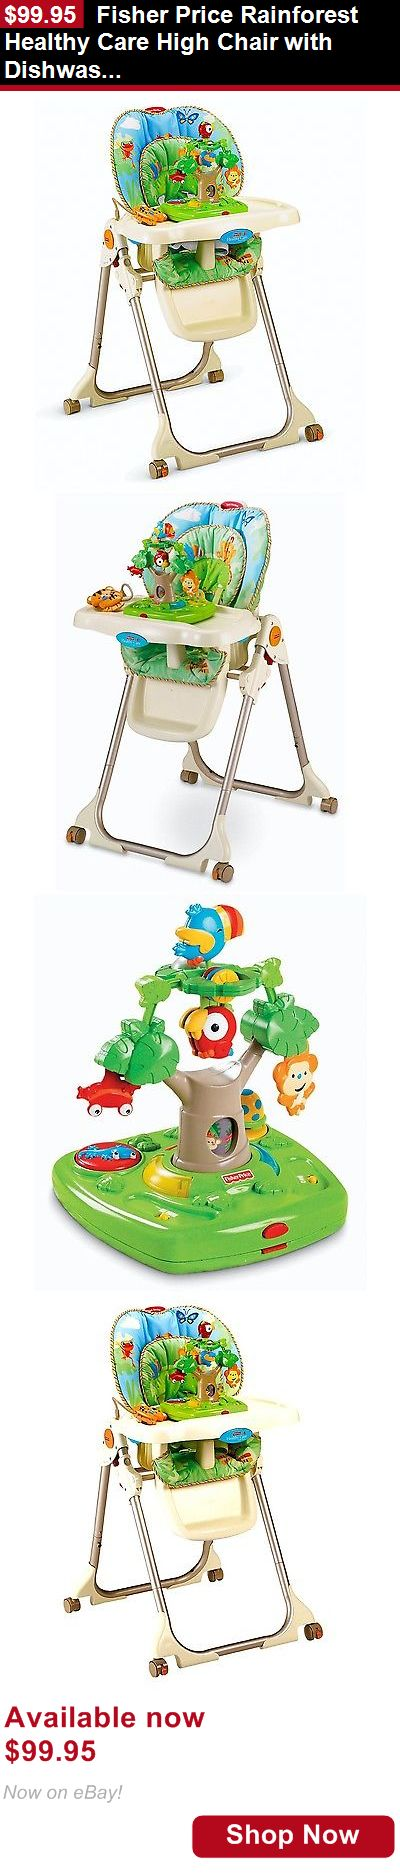 Baby High Chairs: Fisher Price Rainforest Healthy Care High Chair With Dishwasher Safe Tray W3066 BUY IT NOW ONLY: $99.95